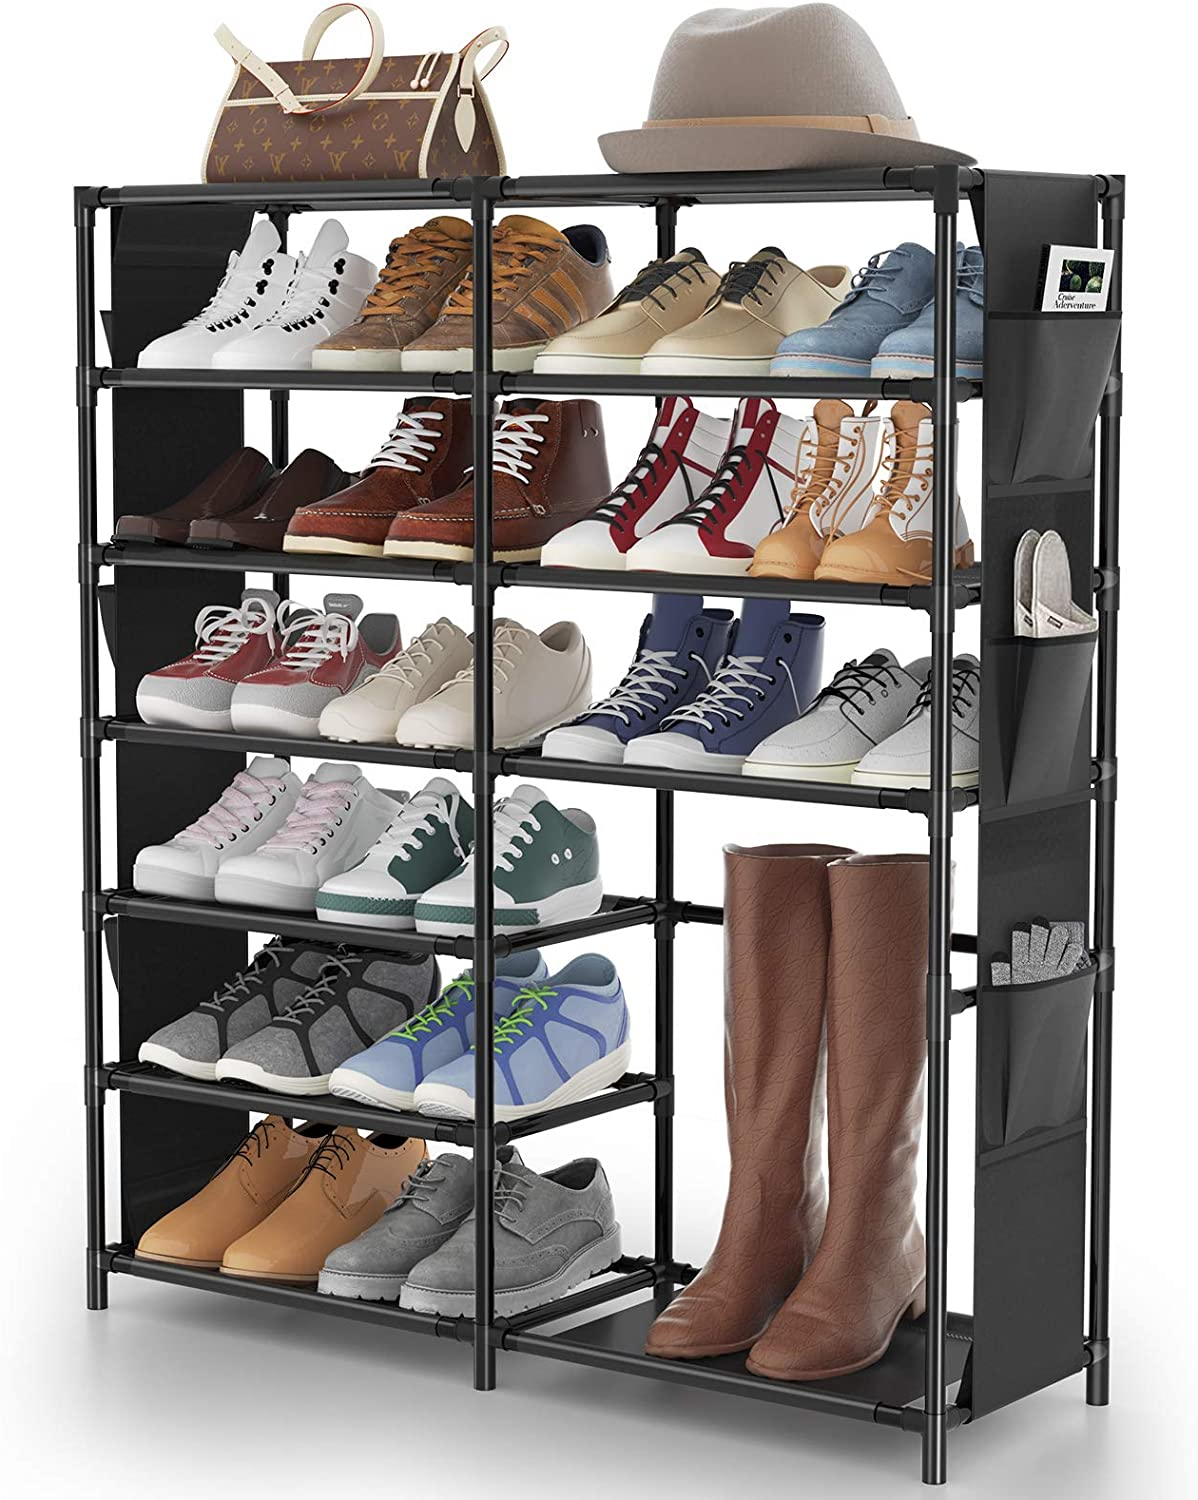 Amazon Com 7 Tier Shoe Rack Shoe Shelf Organizer Jomarto 24 30 Pairs Shoes And Boots Storage Organizer Metal Shoe Tower With Side Hanging Shoe Pockets For Entryway Closet And Bedroom Home Improvement